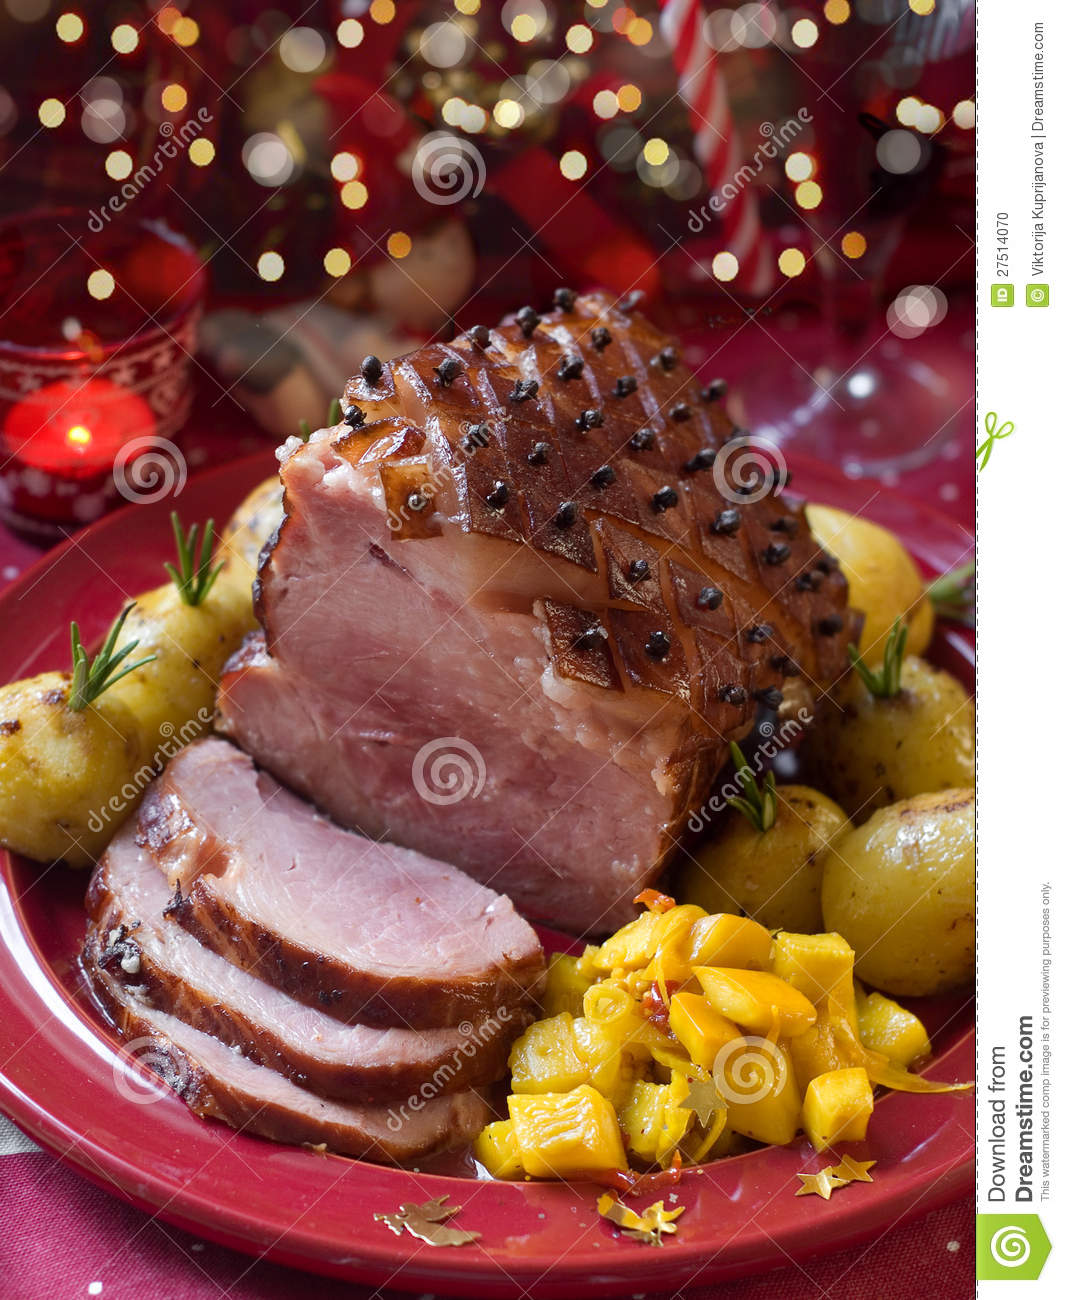 Christmas Meat.Christmas Meat Stock Photo Image Of Potato Baked Cuisine